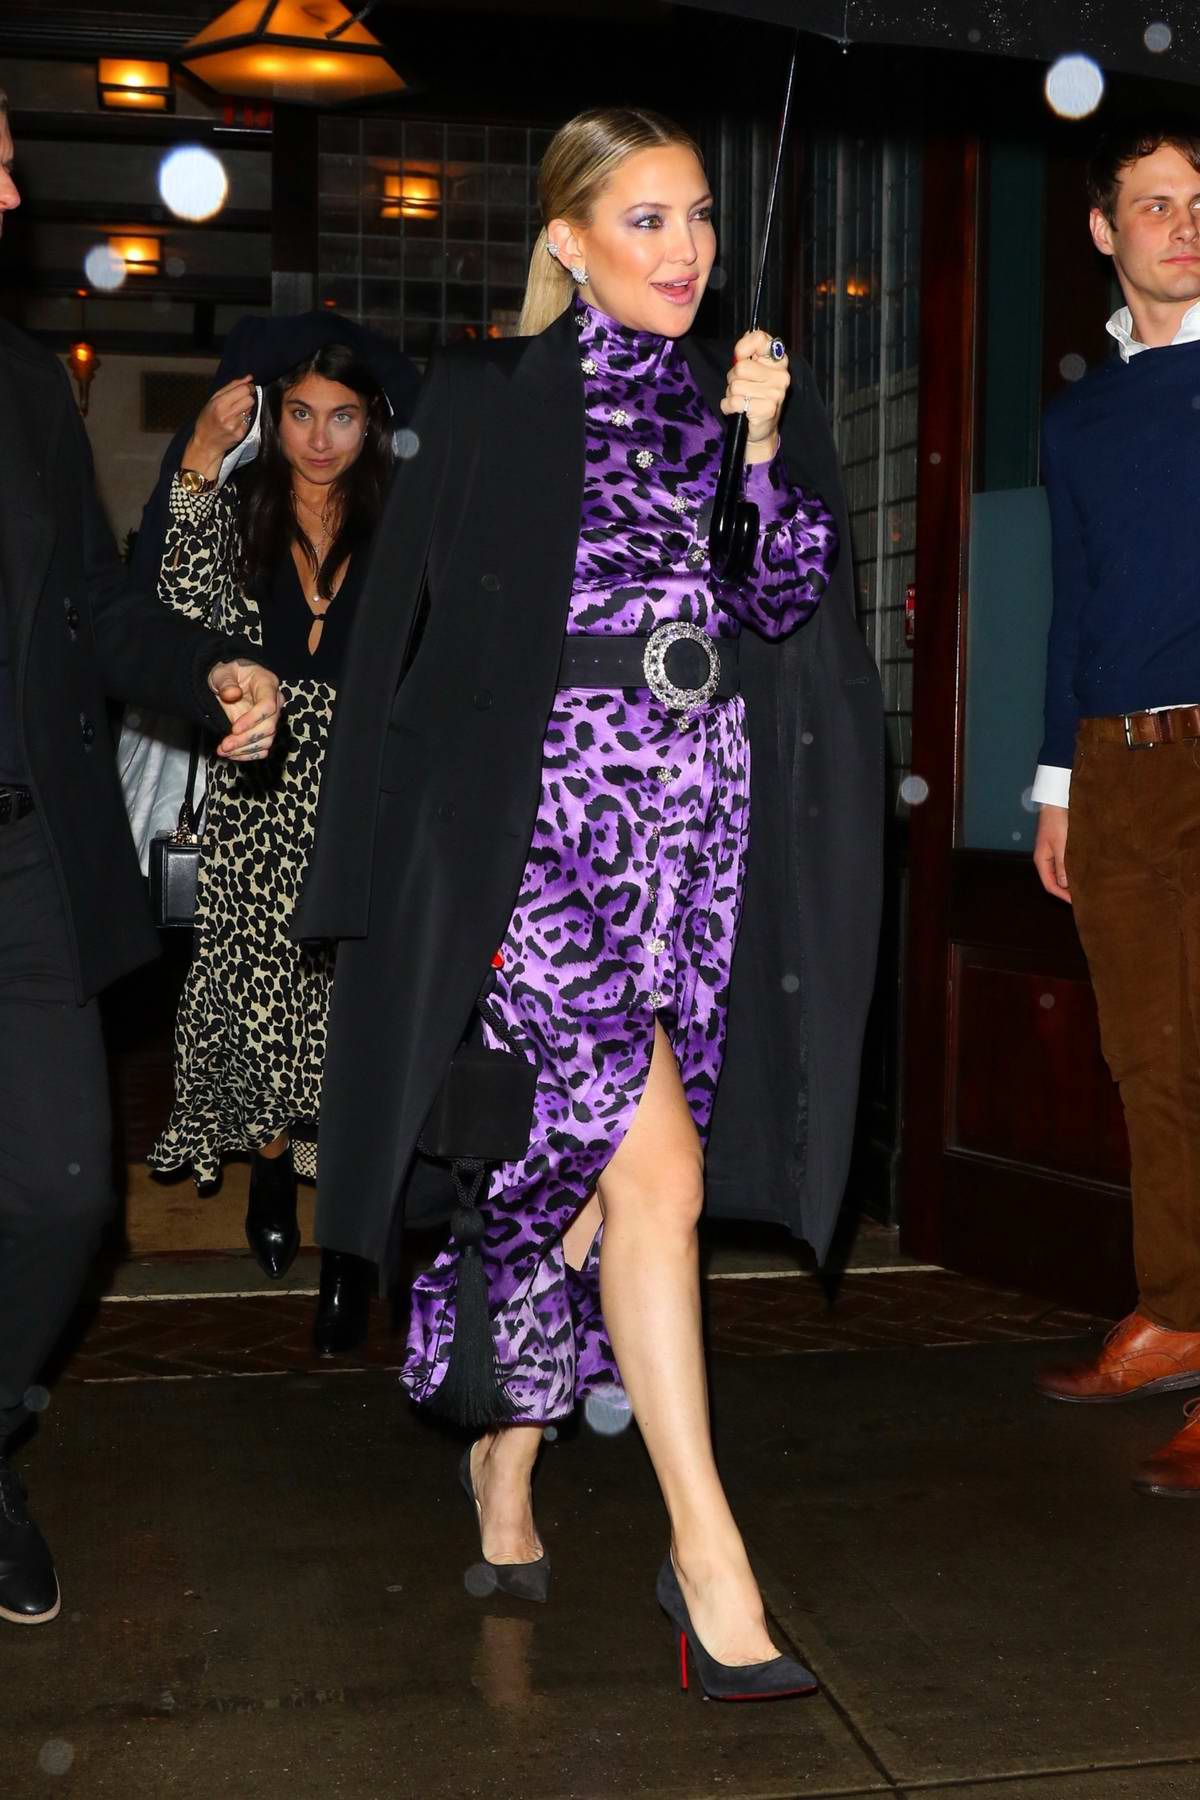 Kate Hudson braves the rain in a purple animal print dress as she leaves her hotel in New York City